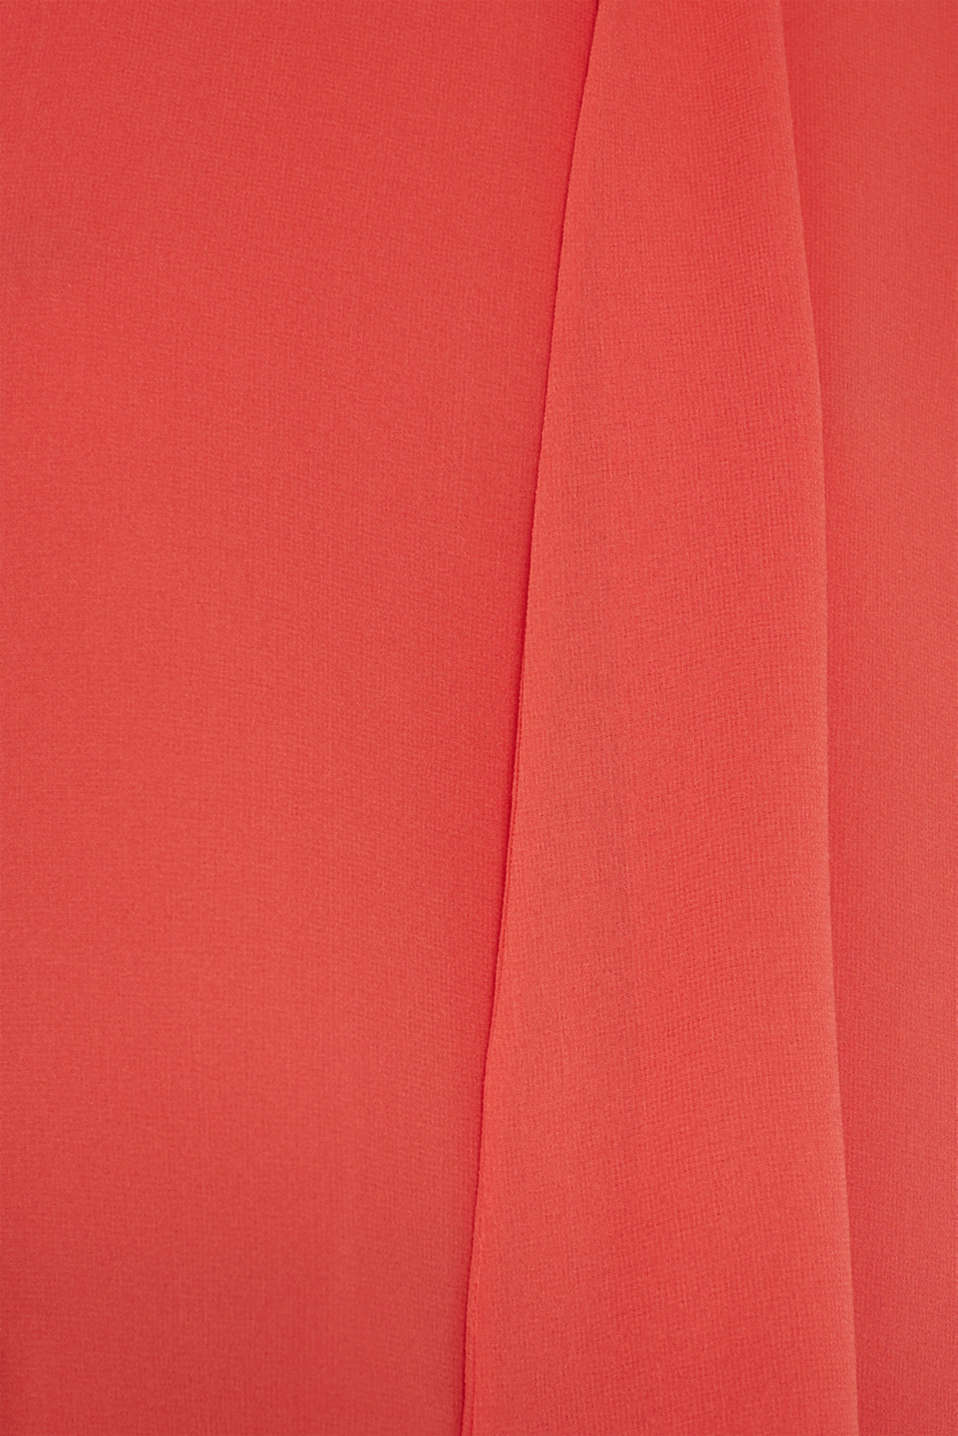 Chiffon blouse with a pussycat bow, TERRACOTTA, detail image number 4